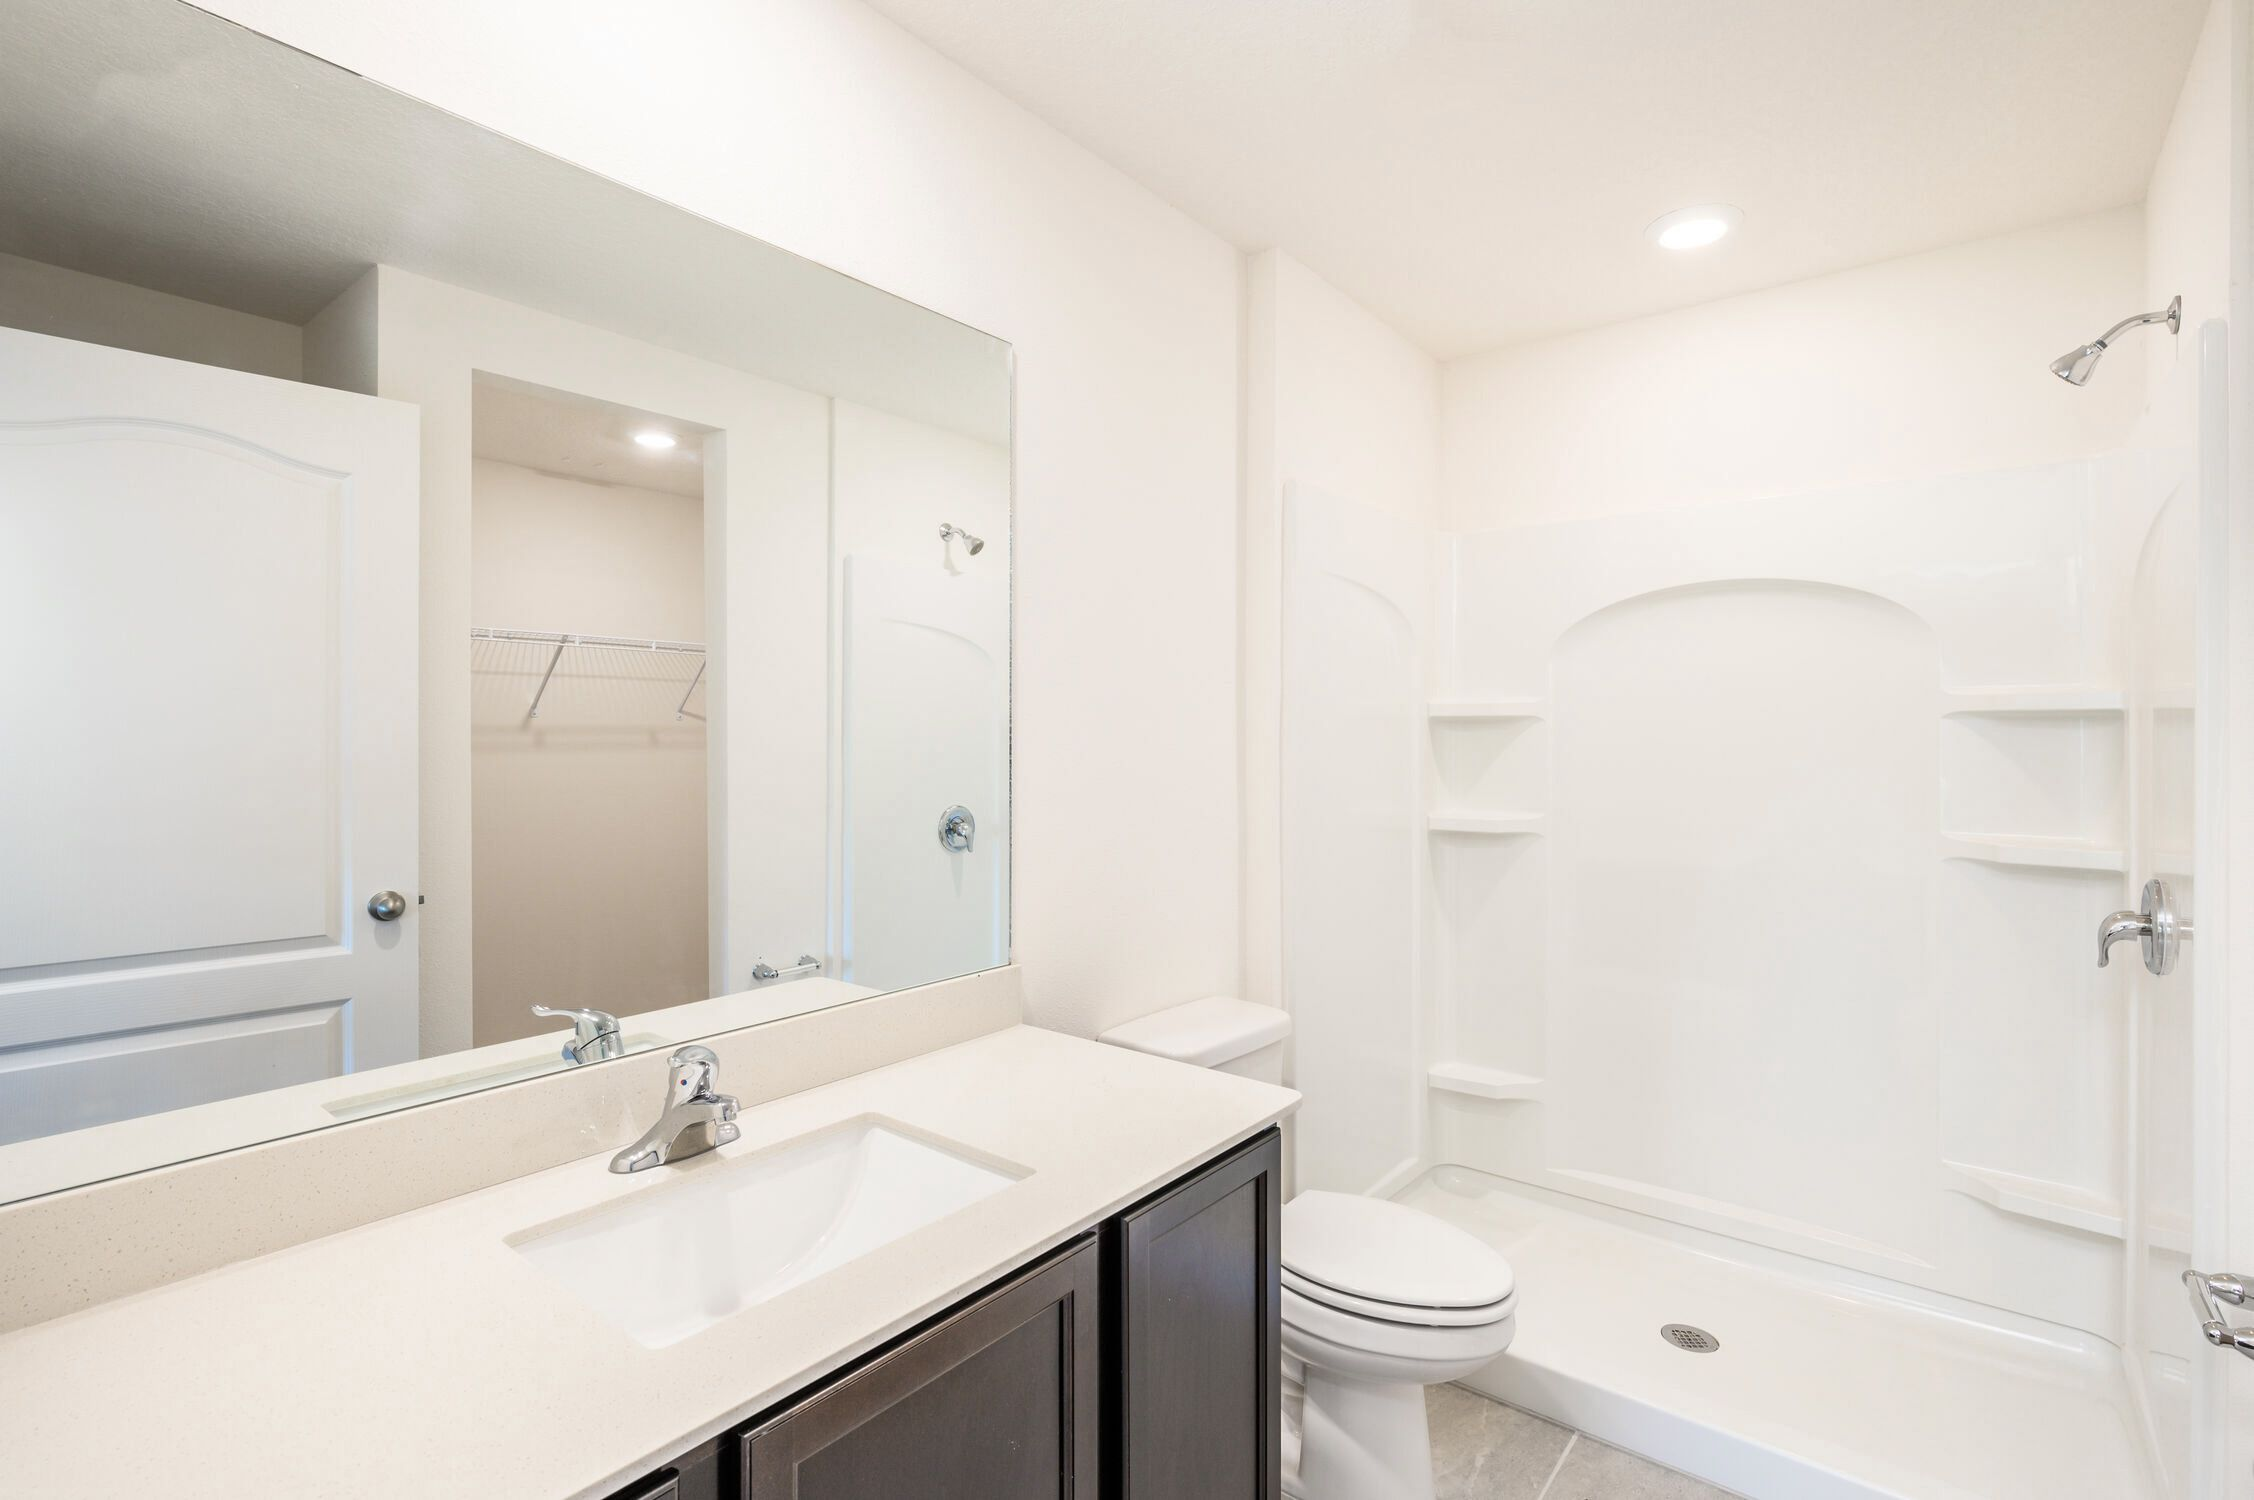 Bathroom featured in the Caladesi By LGI Homes in Melbourne, FL